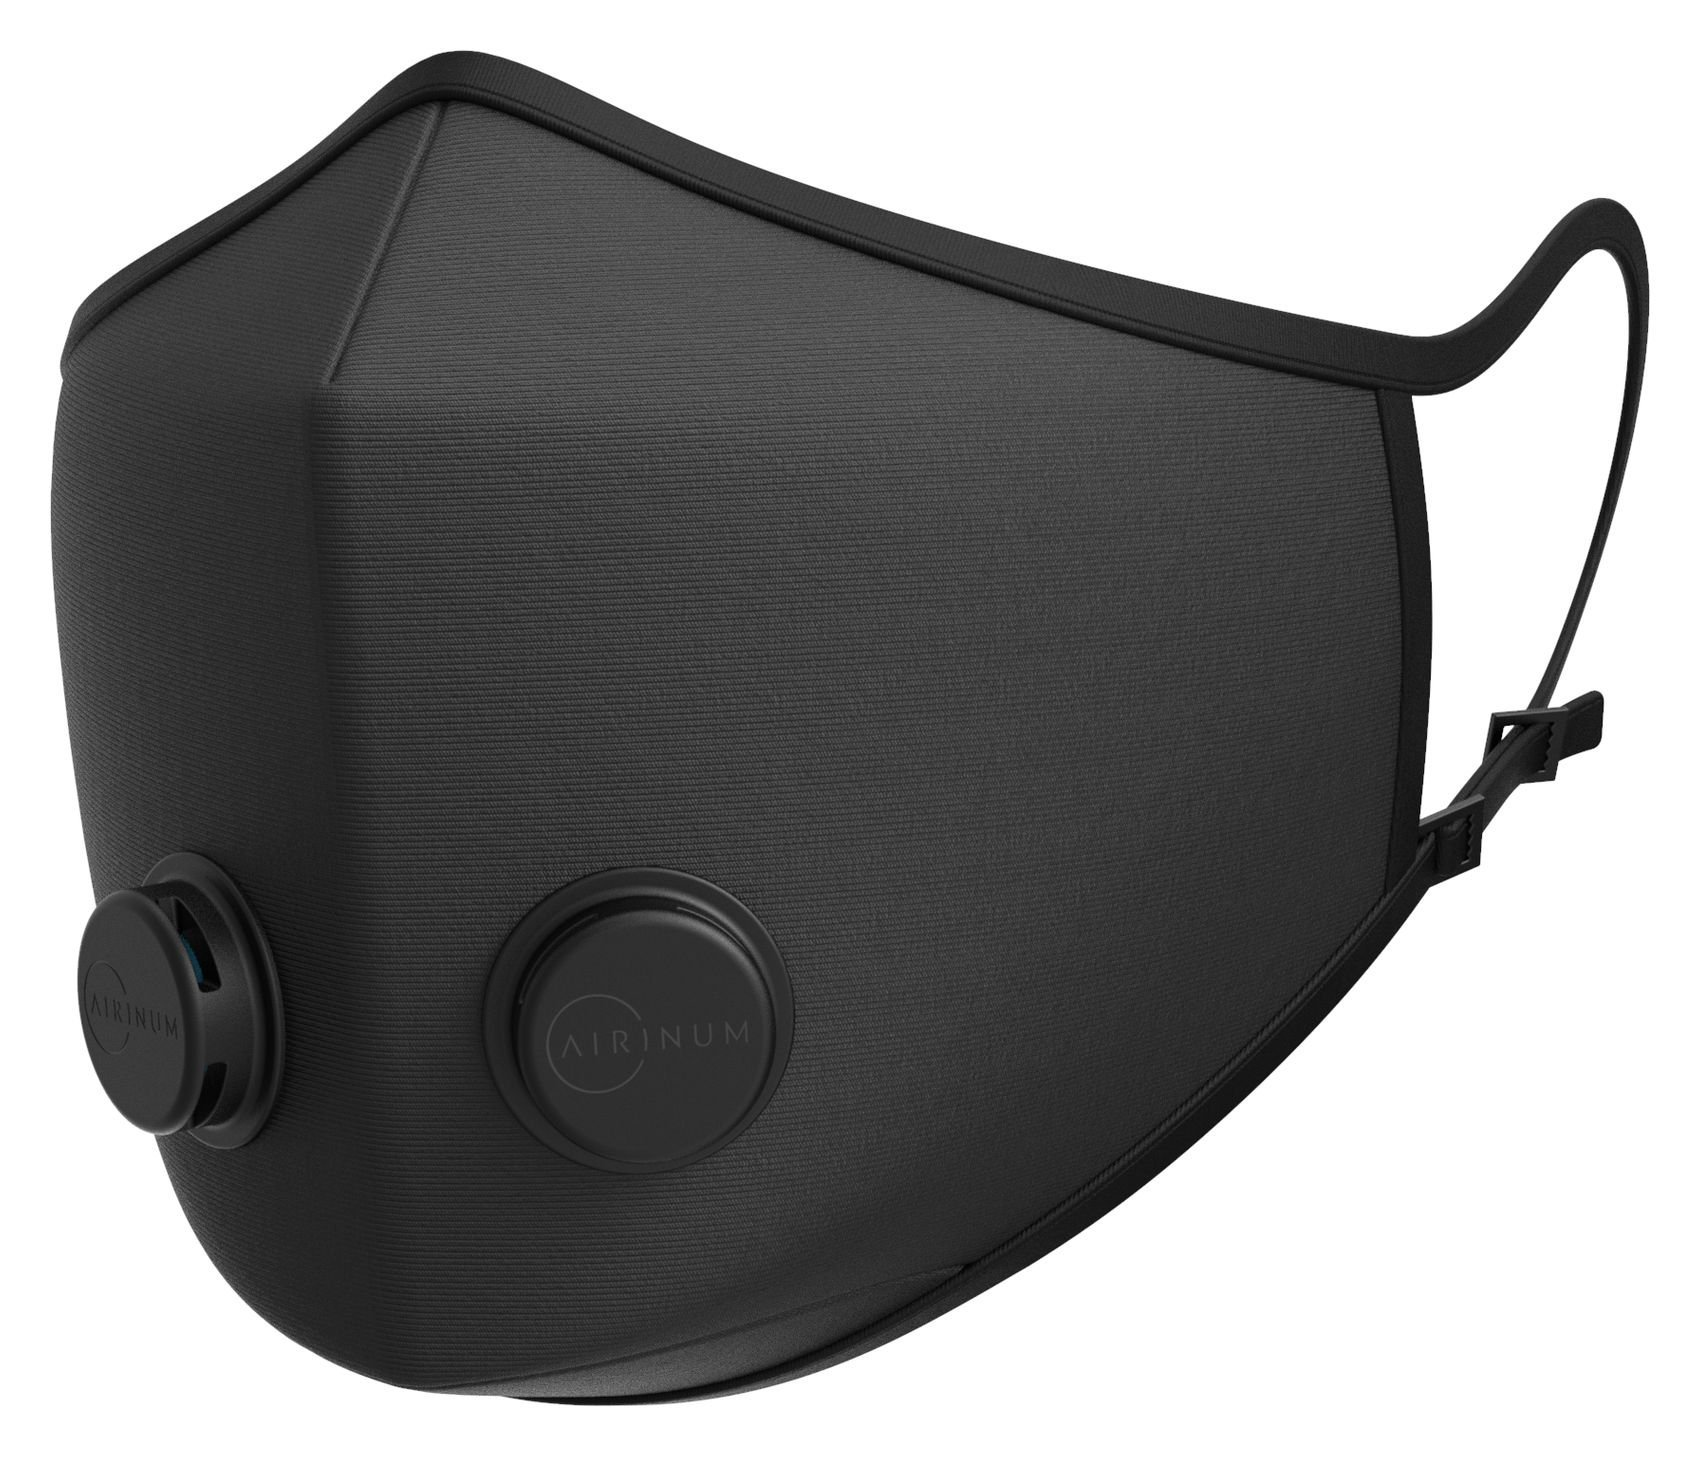 Airinum Urban Air Mask 1.0 – Reusable & Adjustable Air Mask That Protects Against Air Pollution, Smog, Allergens and Bacteria – Solid Black M by Airinum (Image #1)